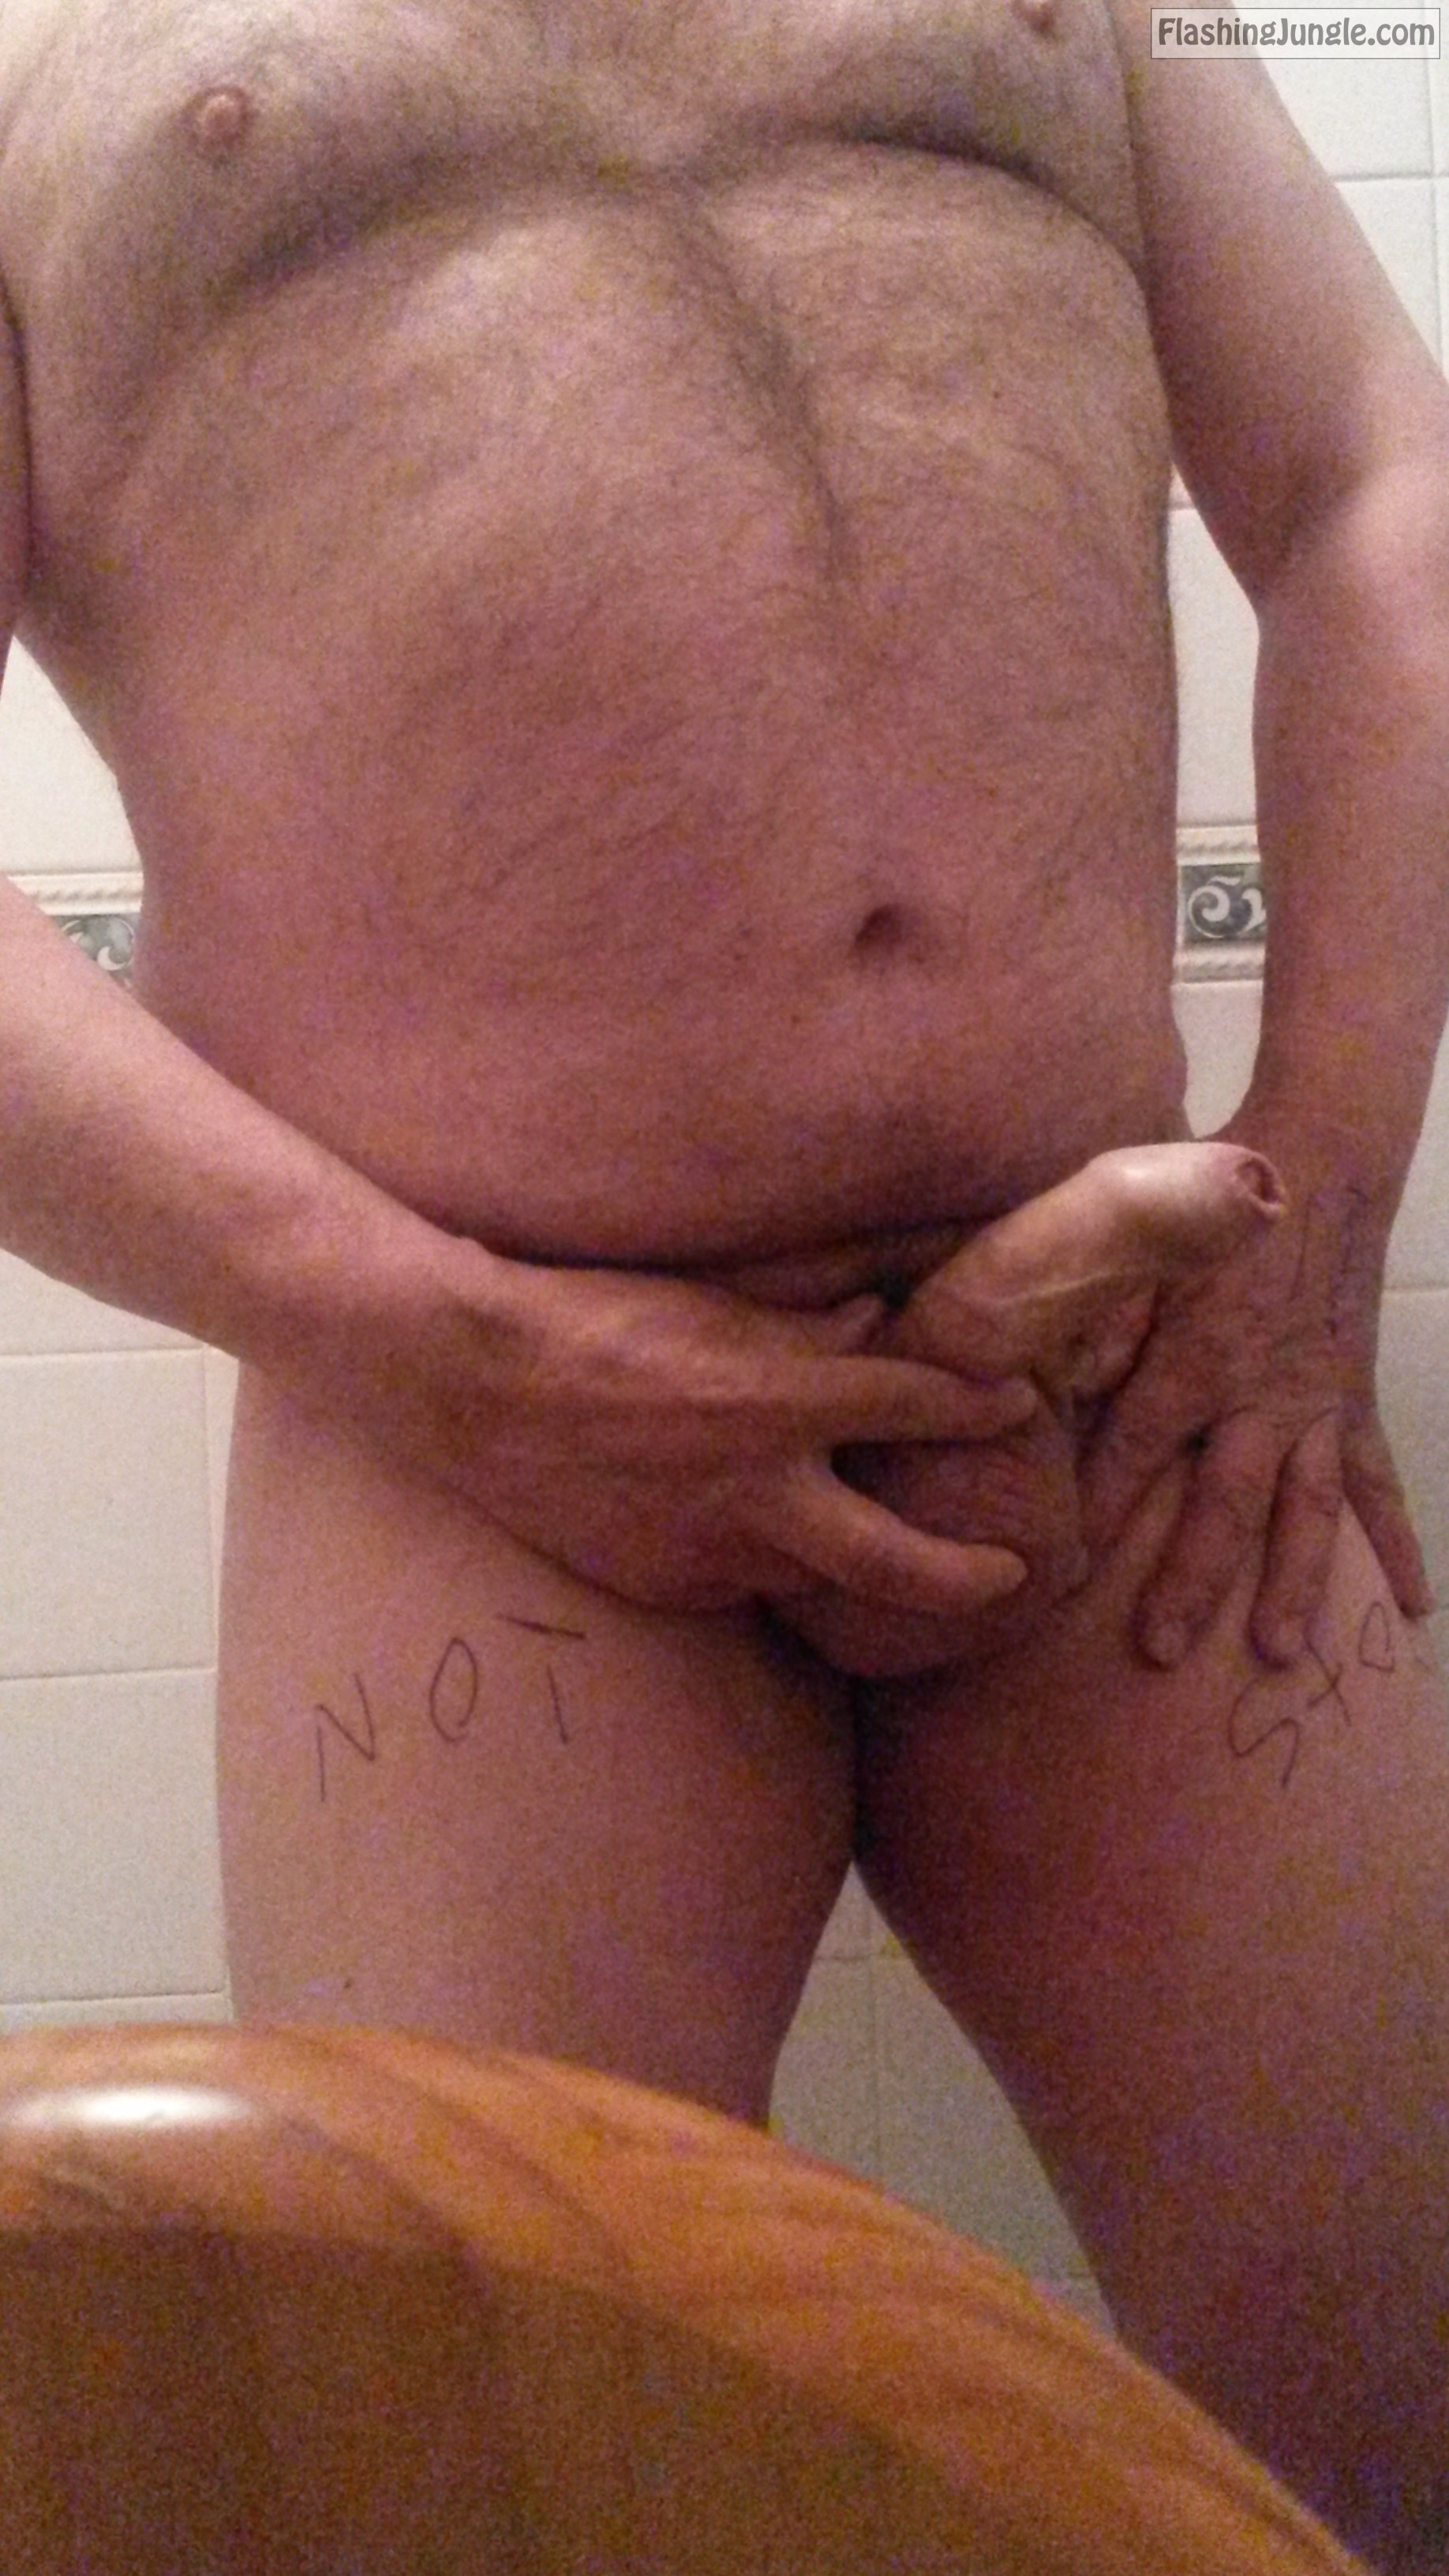 Real Amateurs Dick Flash Pics